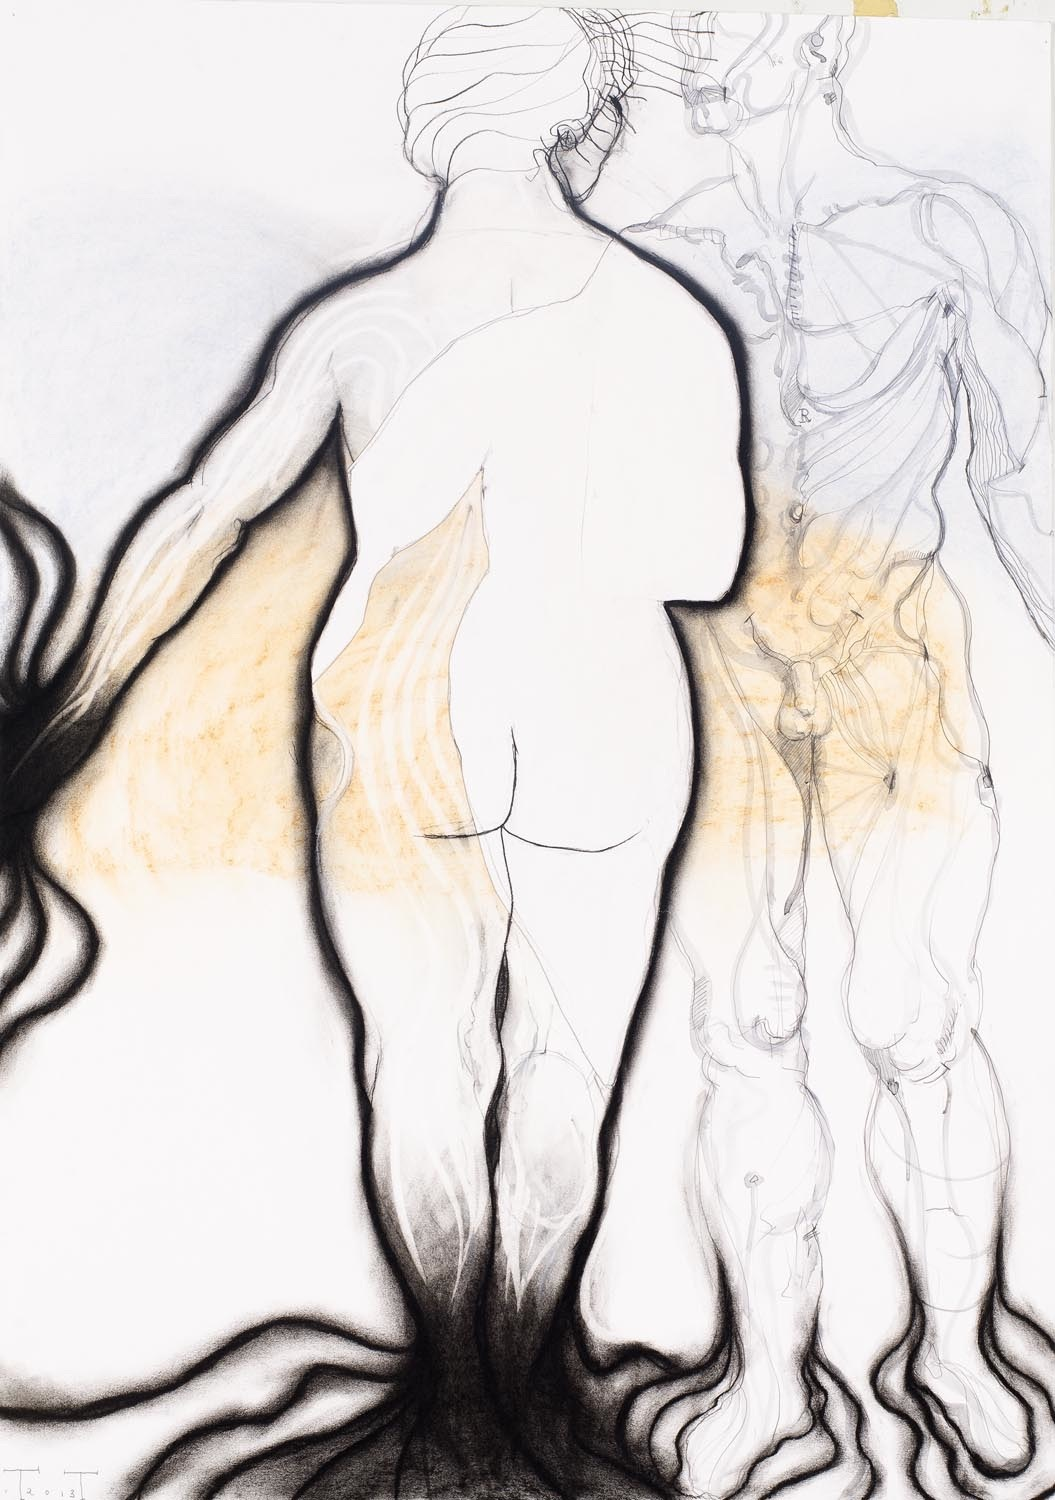 The Muse, mixed media on paper, 100 X 70 cm, 2013 (private collection)